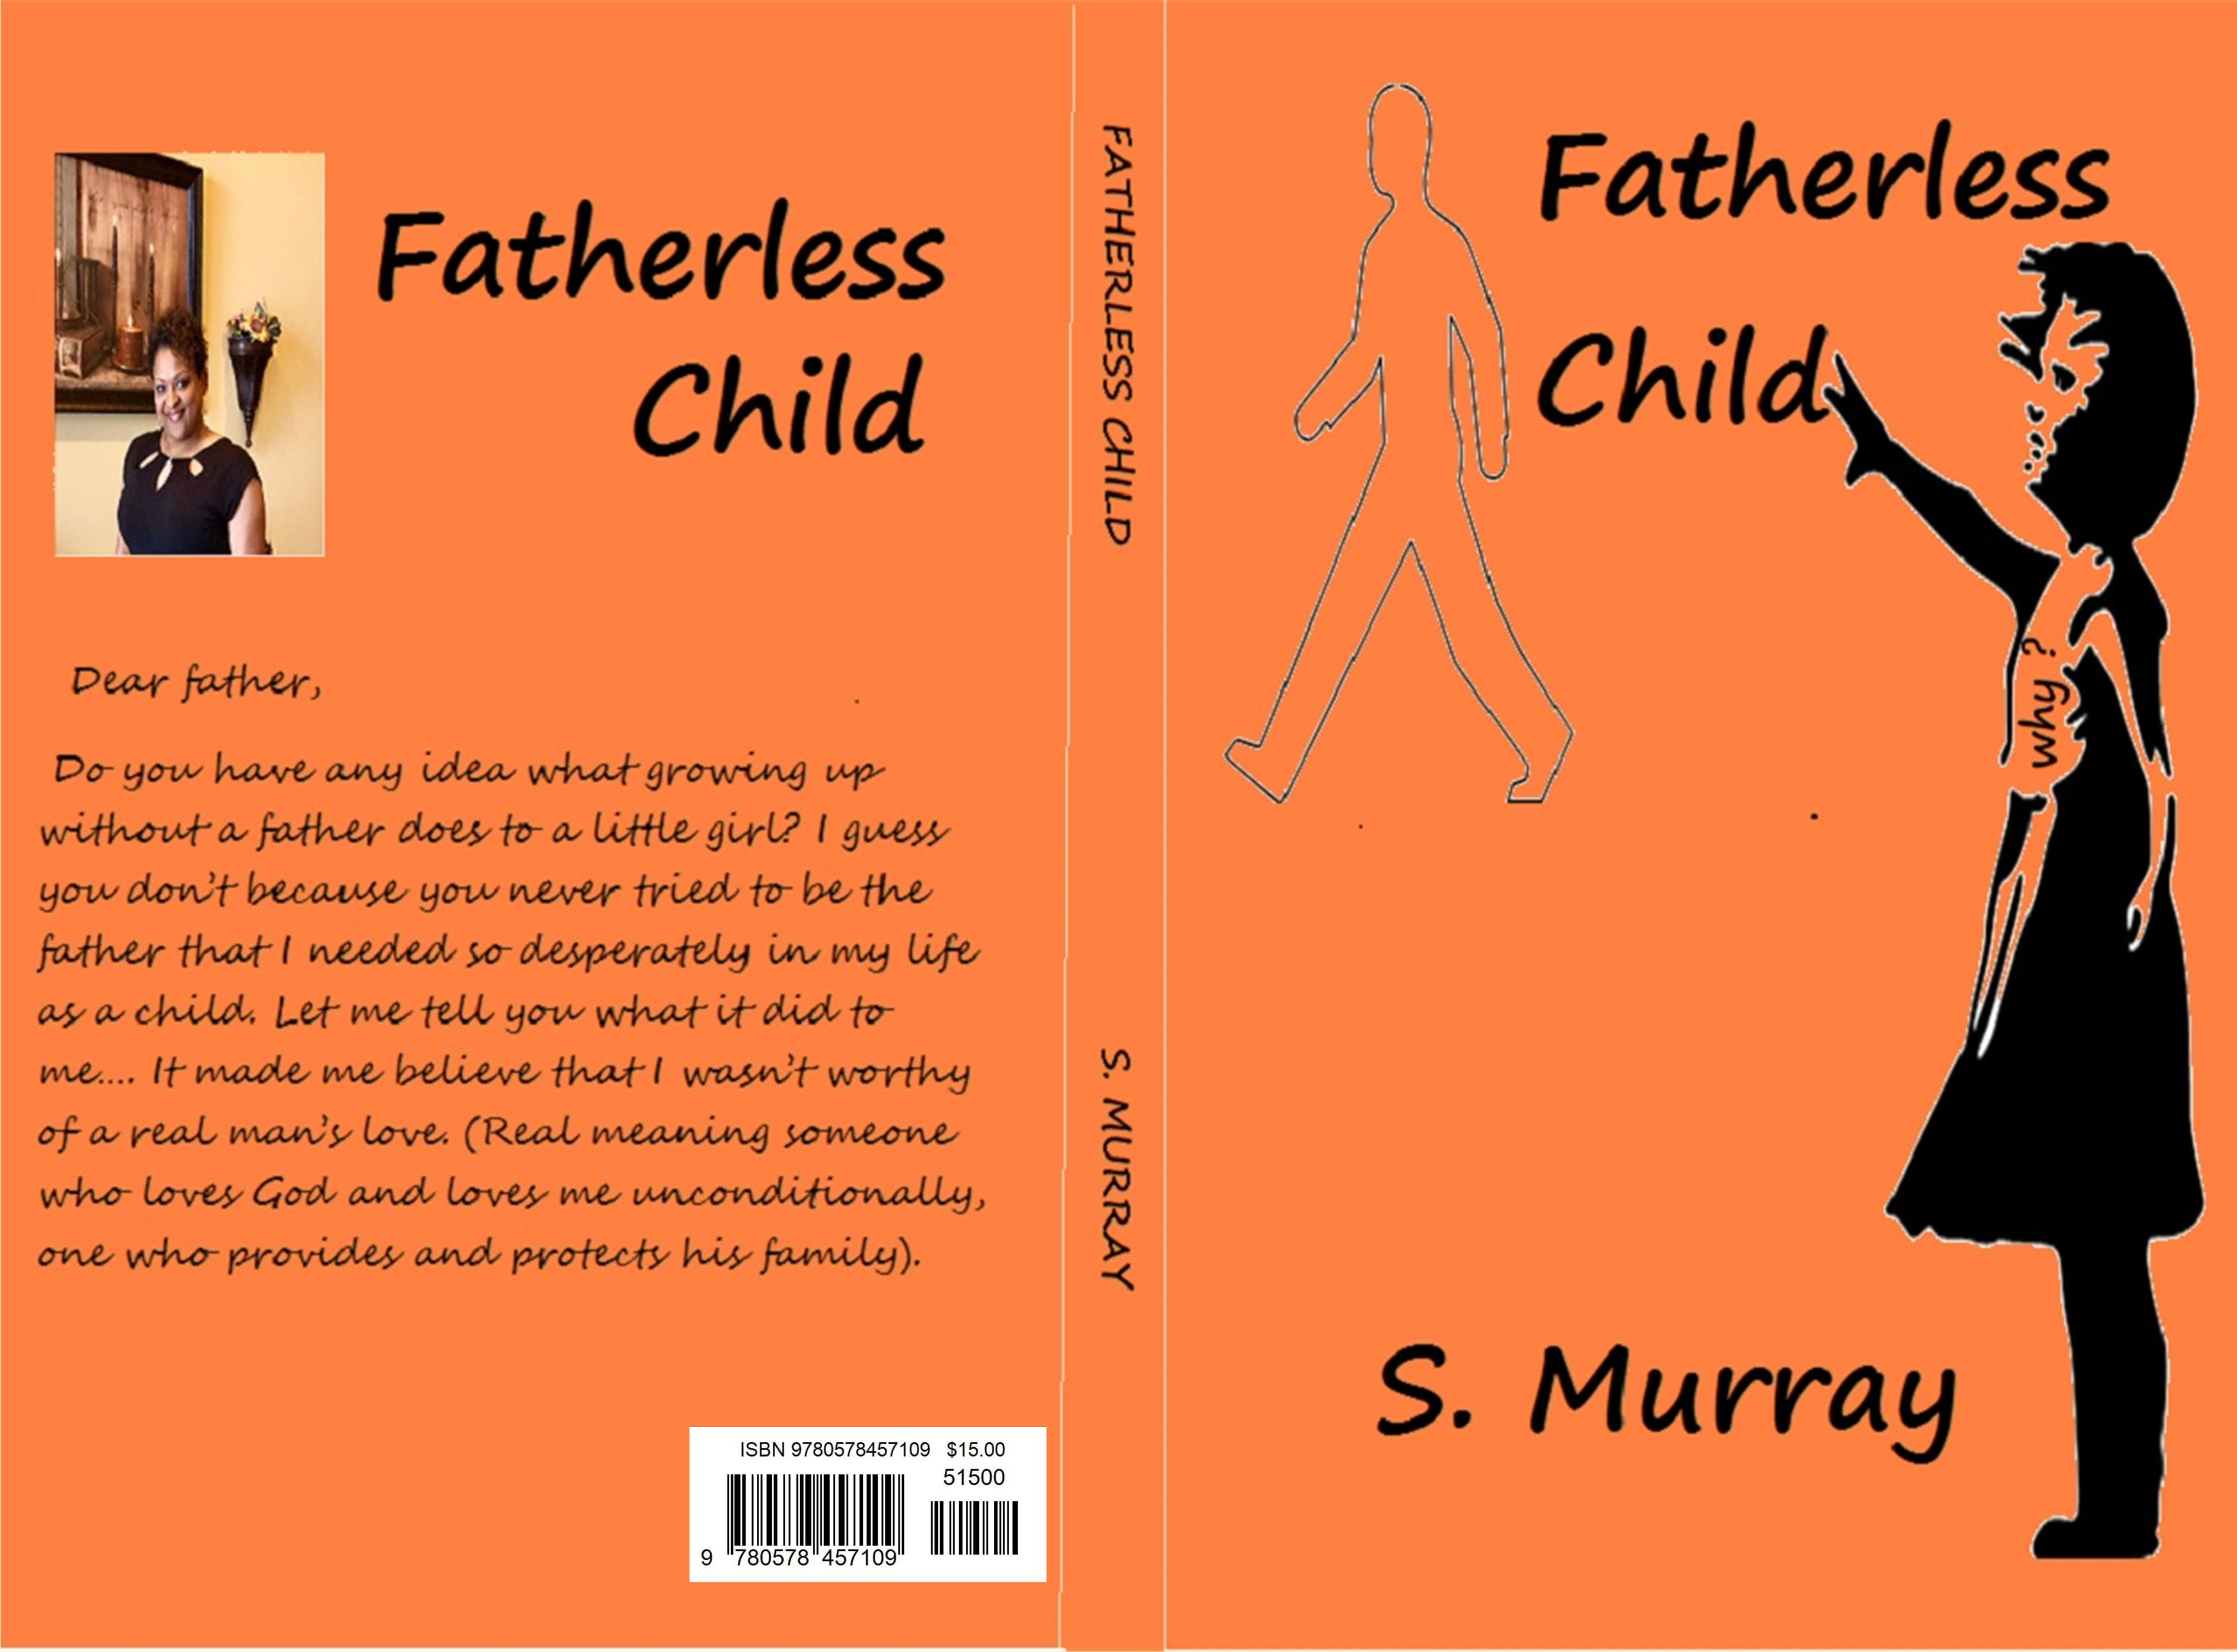 Fatherless Child cover image